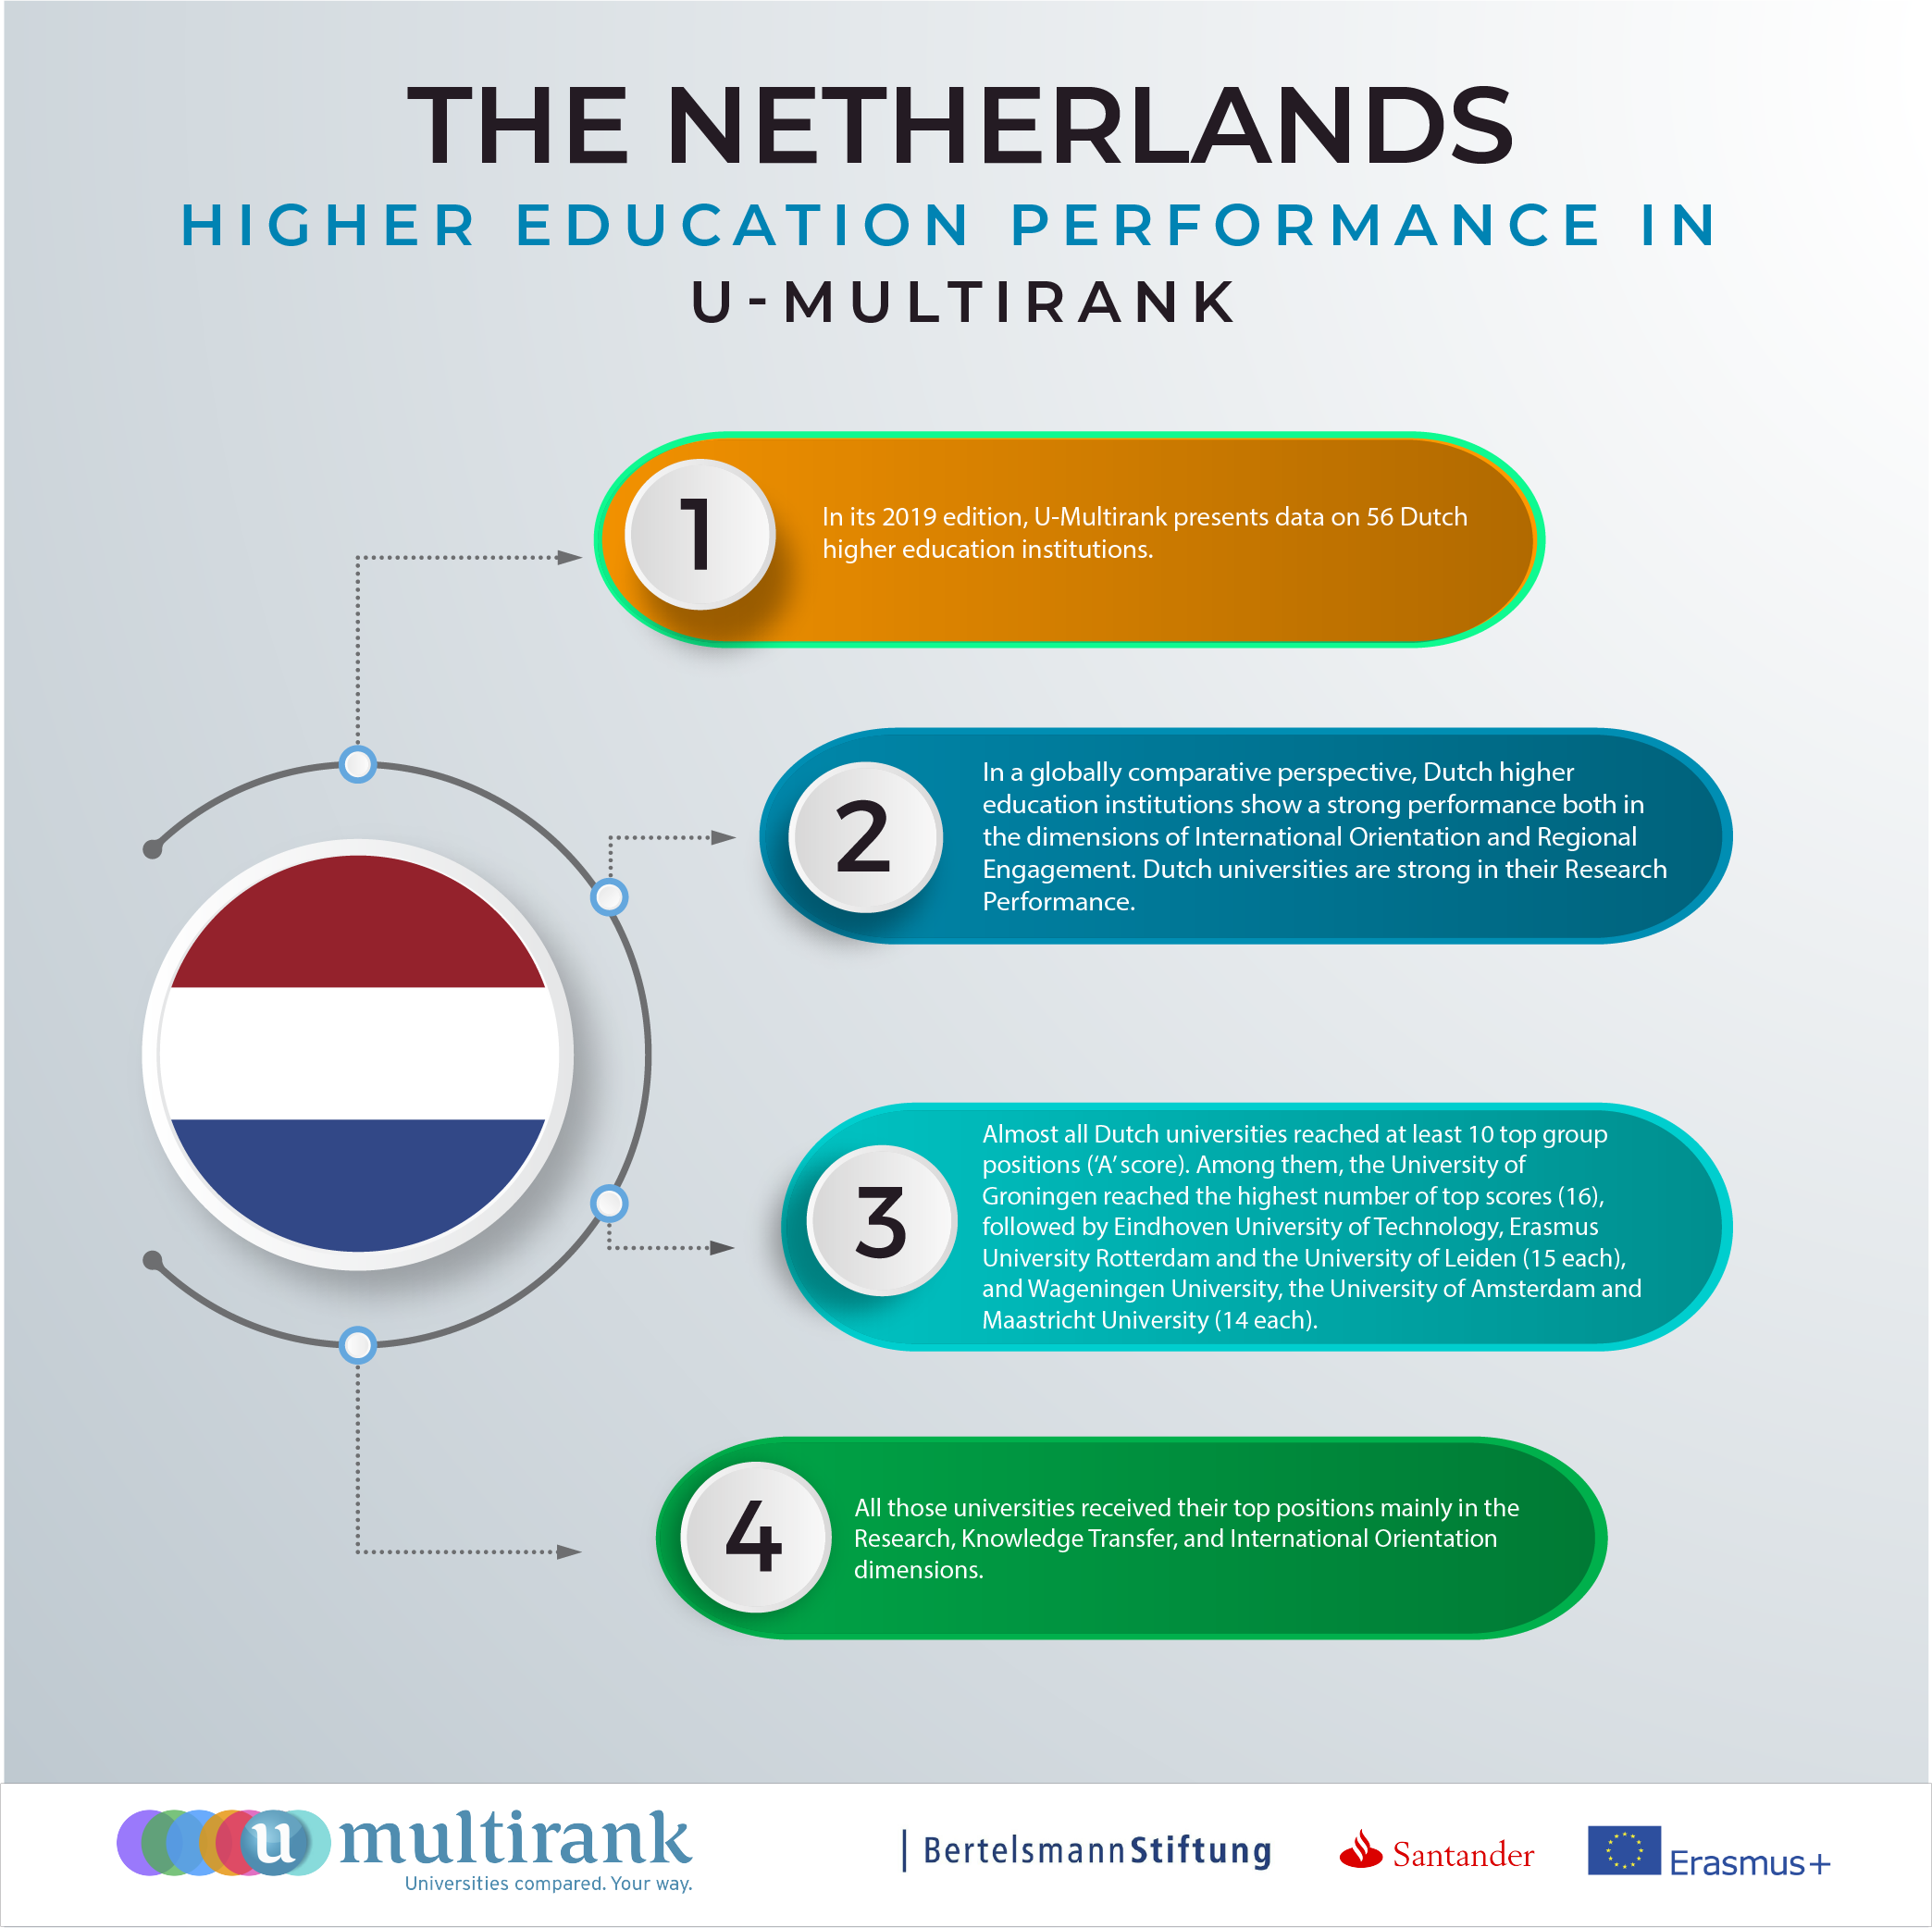 The Netherlands' Higher Education Performance in U-Multirank